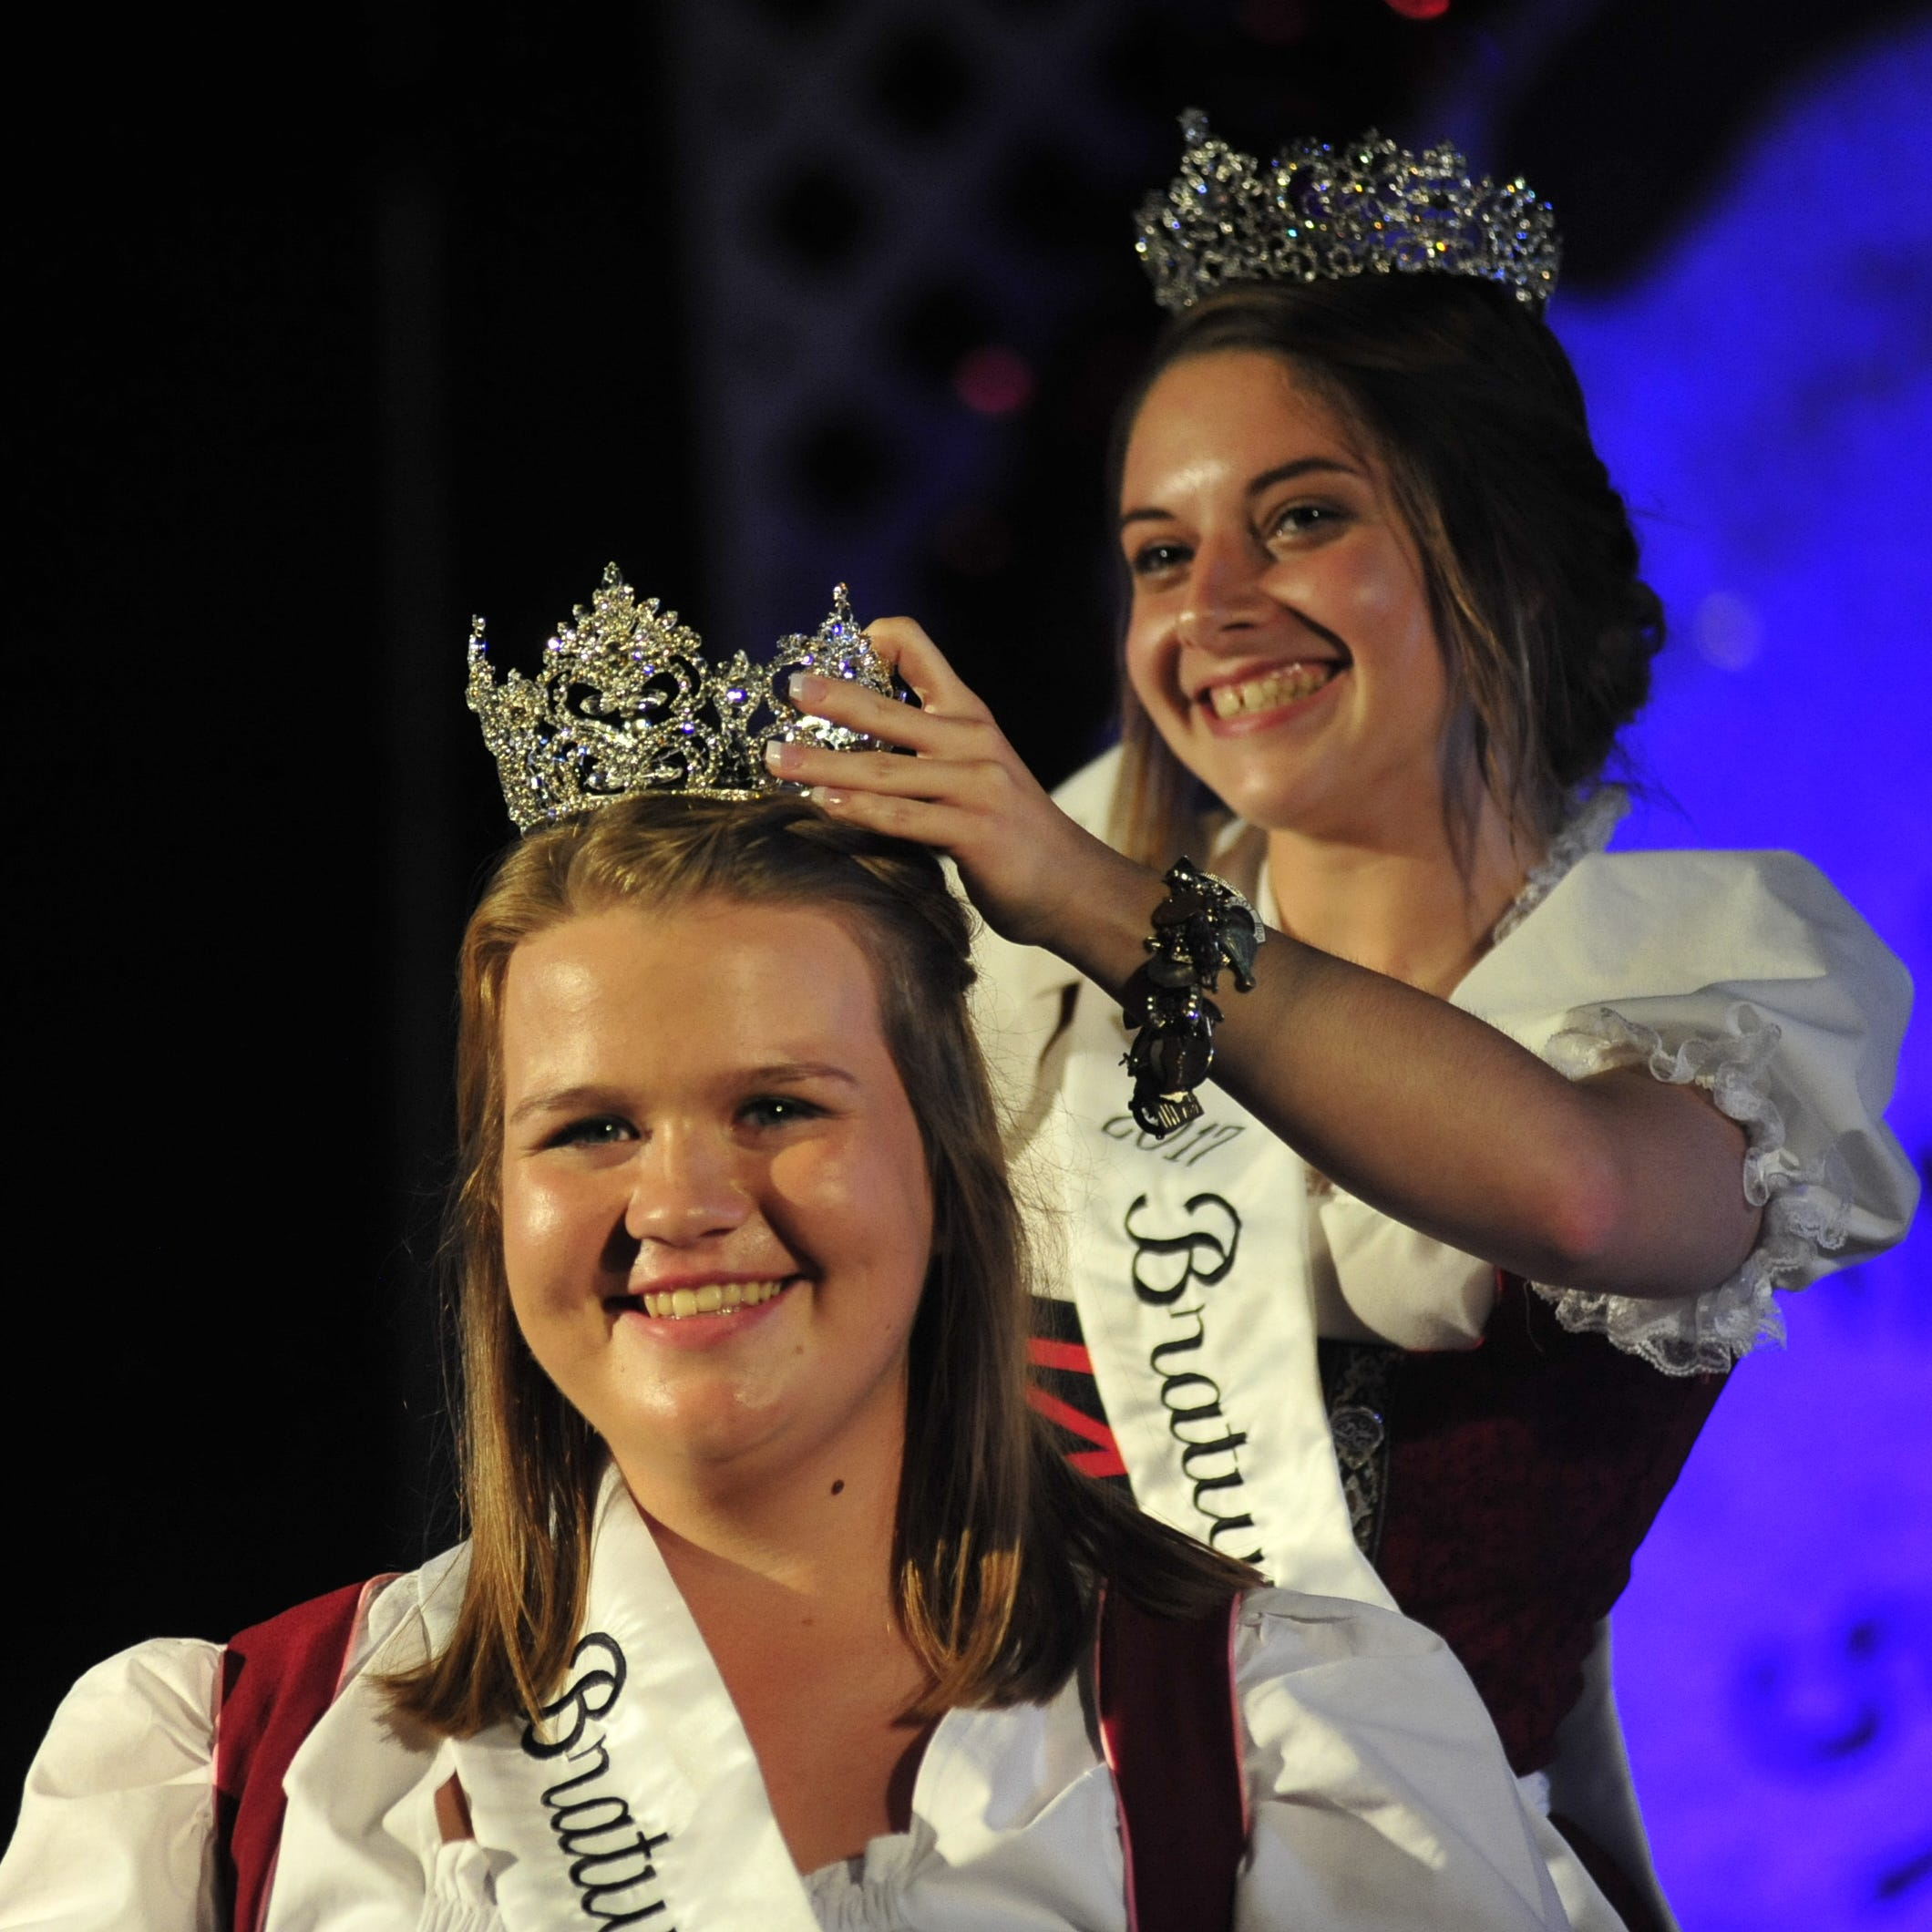 Emily Rudd named 2018 Bratwurst Festival Queen